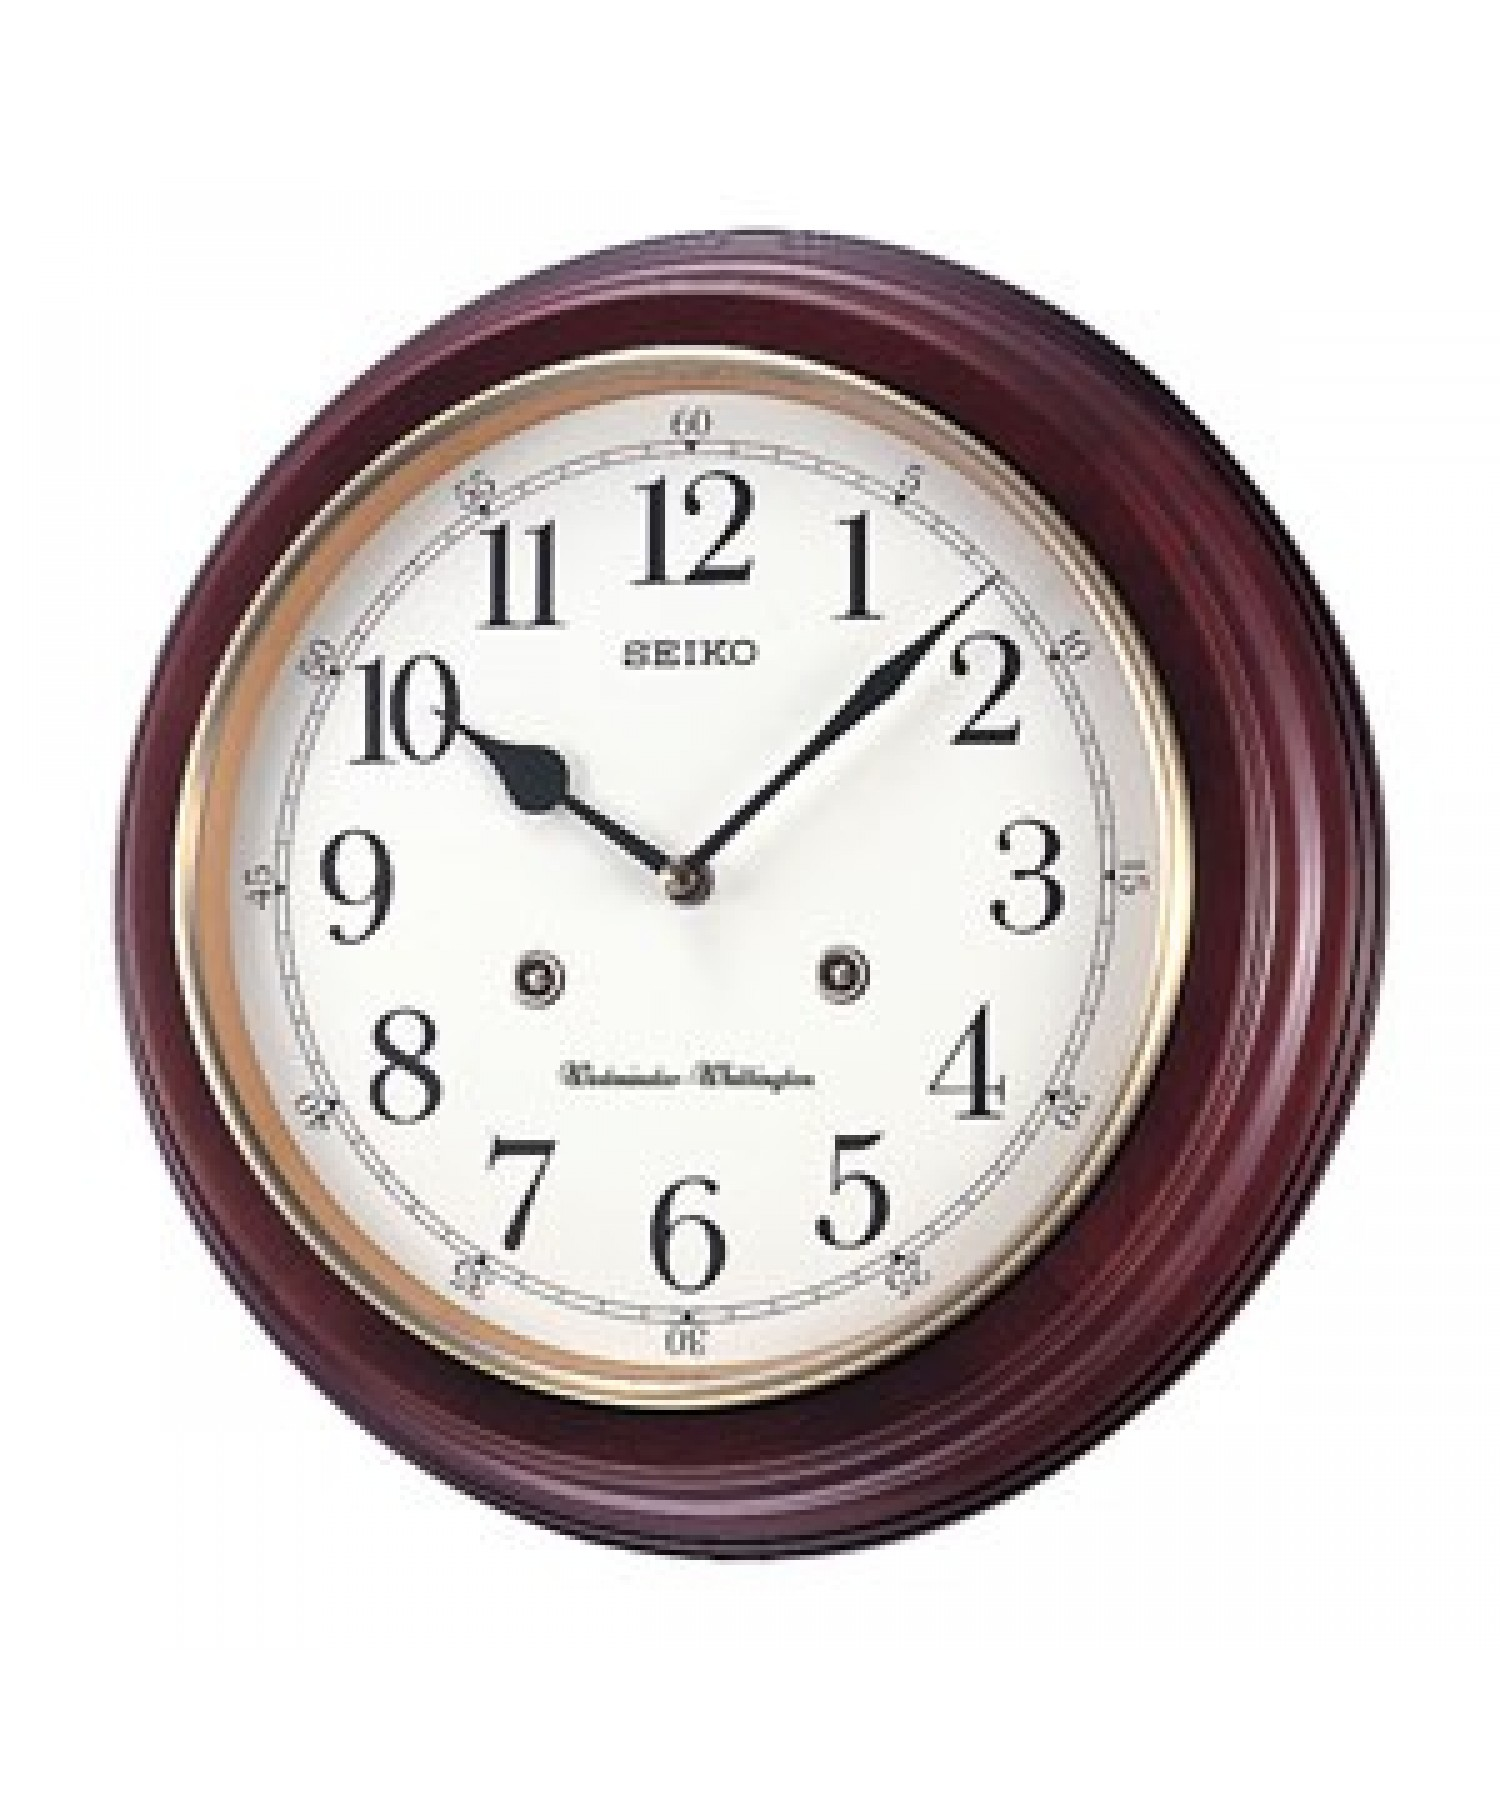 Musical wall clock qxh202z amipublicfo Gallery